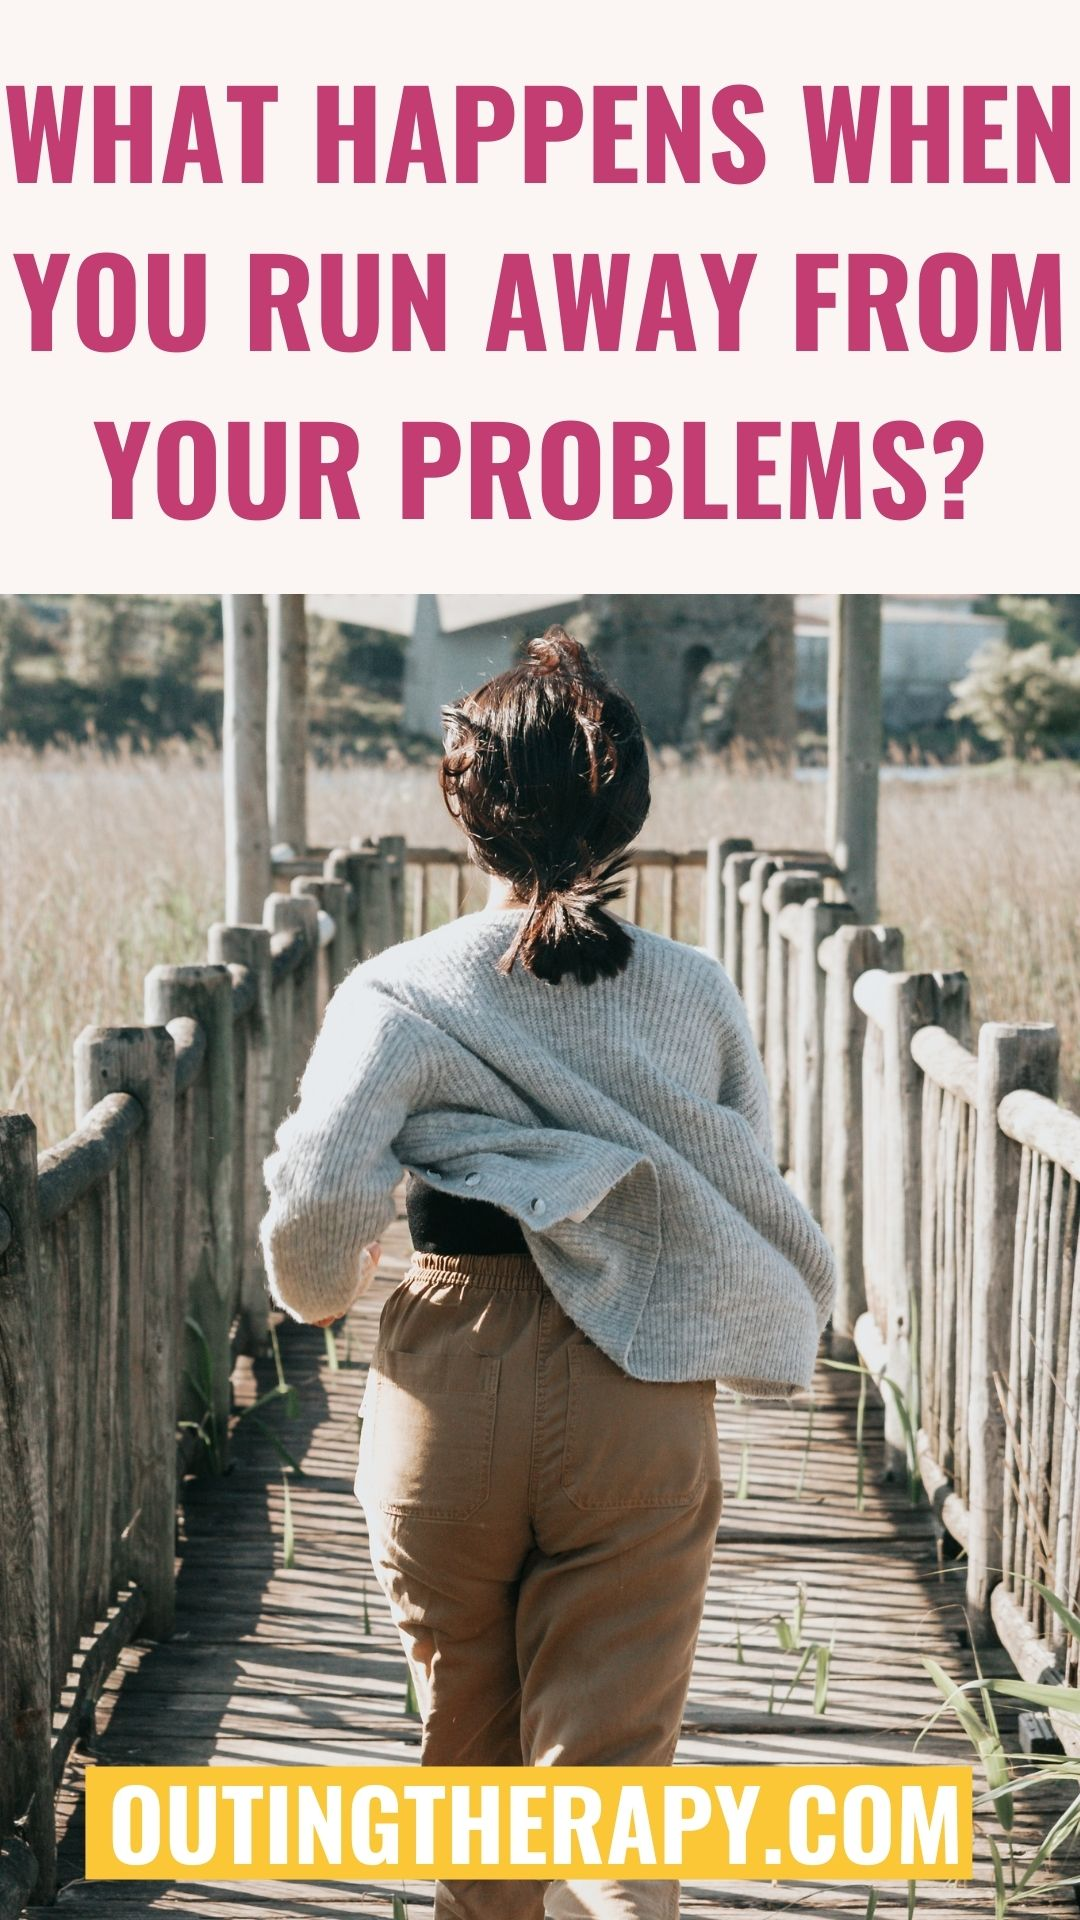 WHAT HAPPENS WHEN YOU RUN AWAY FROM YOUR PROBLEMS?